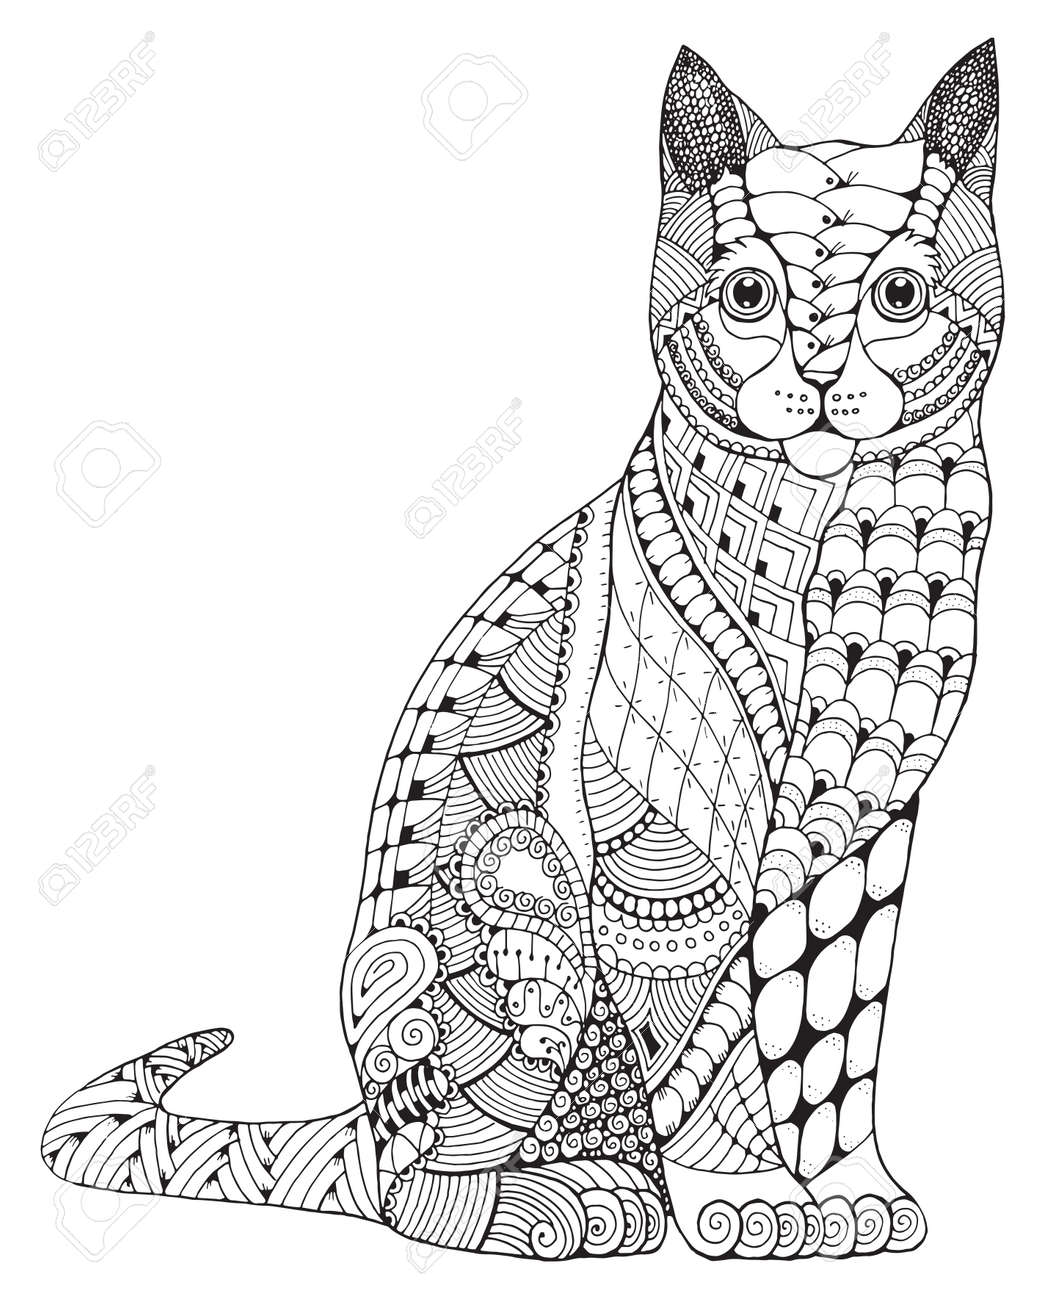 Cat zentangle stylized, vector, illustration, pattern, freehand pencil, hand drawn. Zen art. Ornate. Lace. Print for t-shirts and coloring books. - 69809307